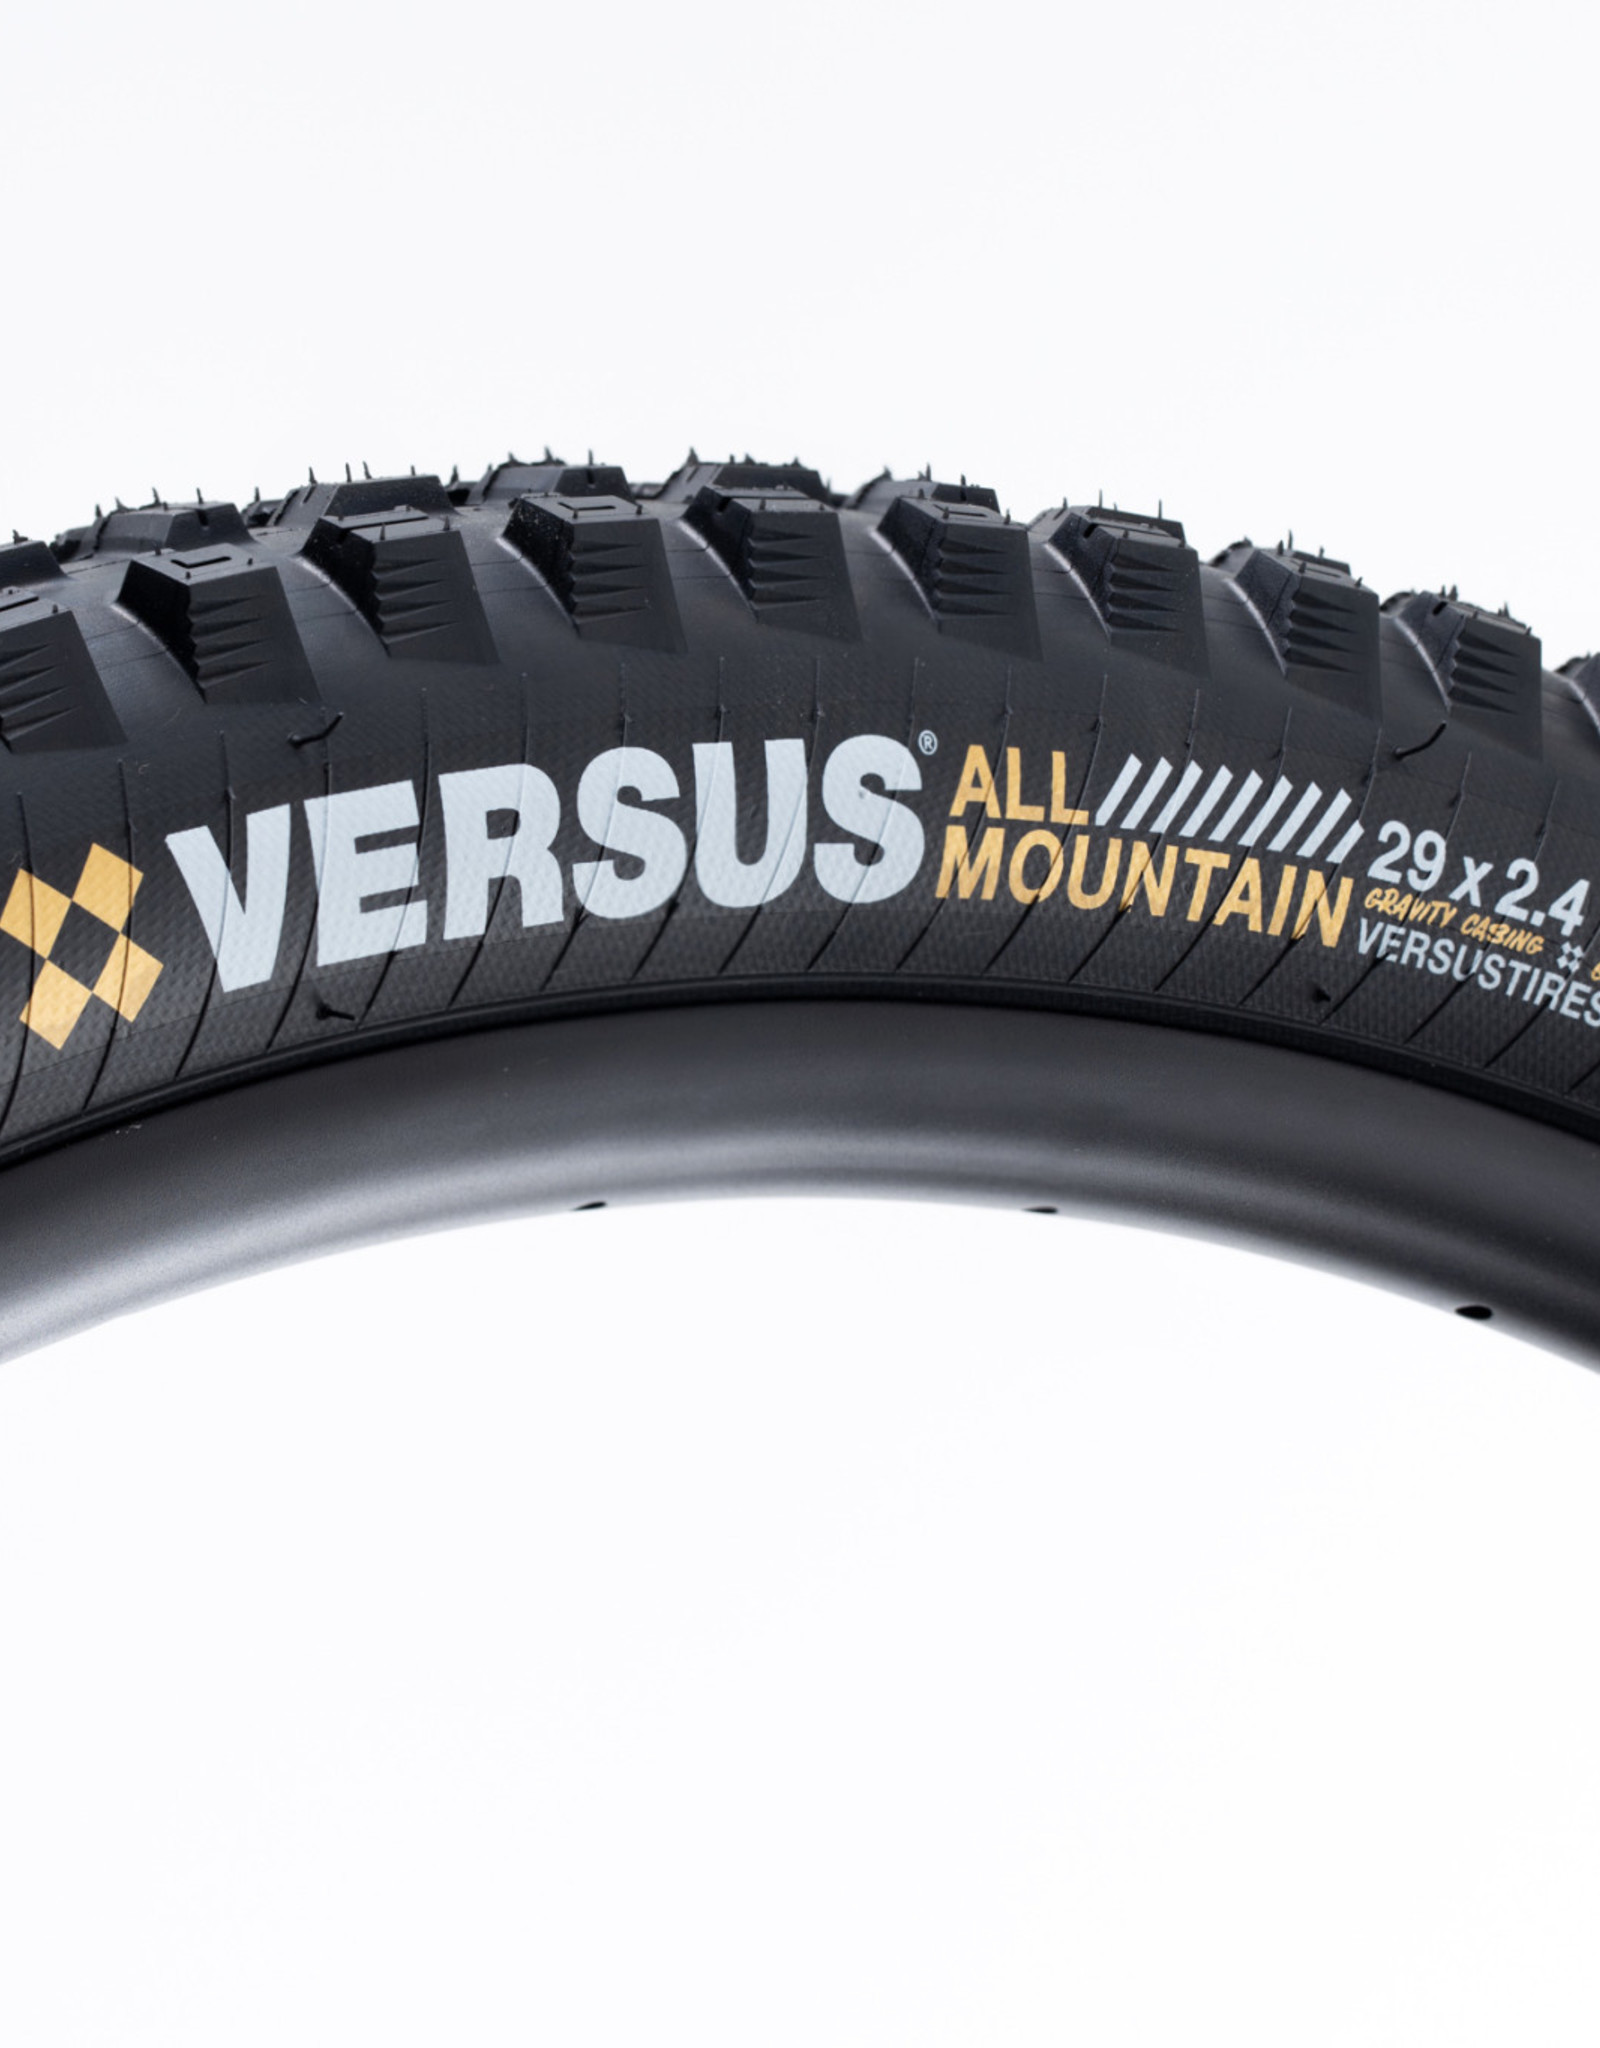 Versus Versus Tire All Mountain Trail Casing